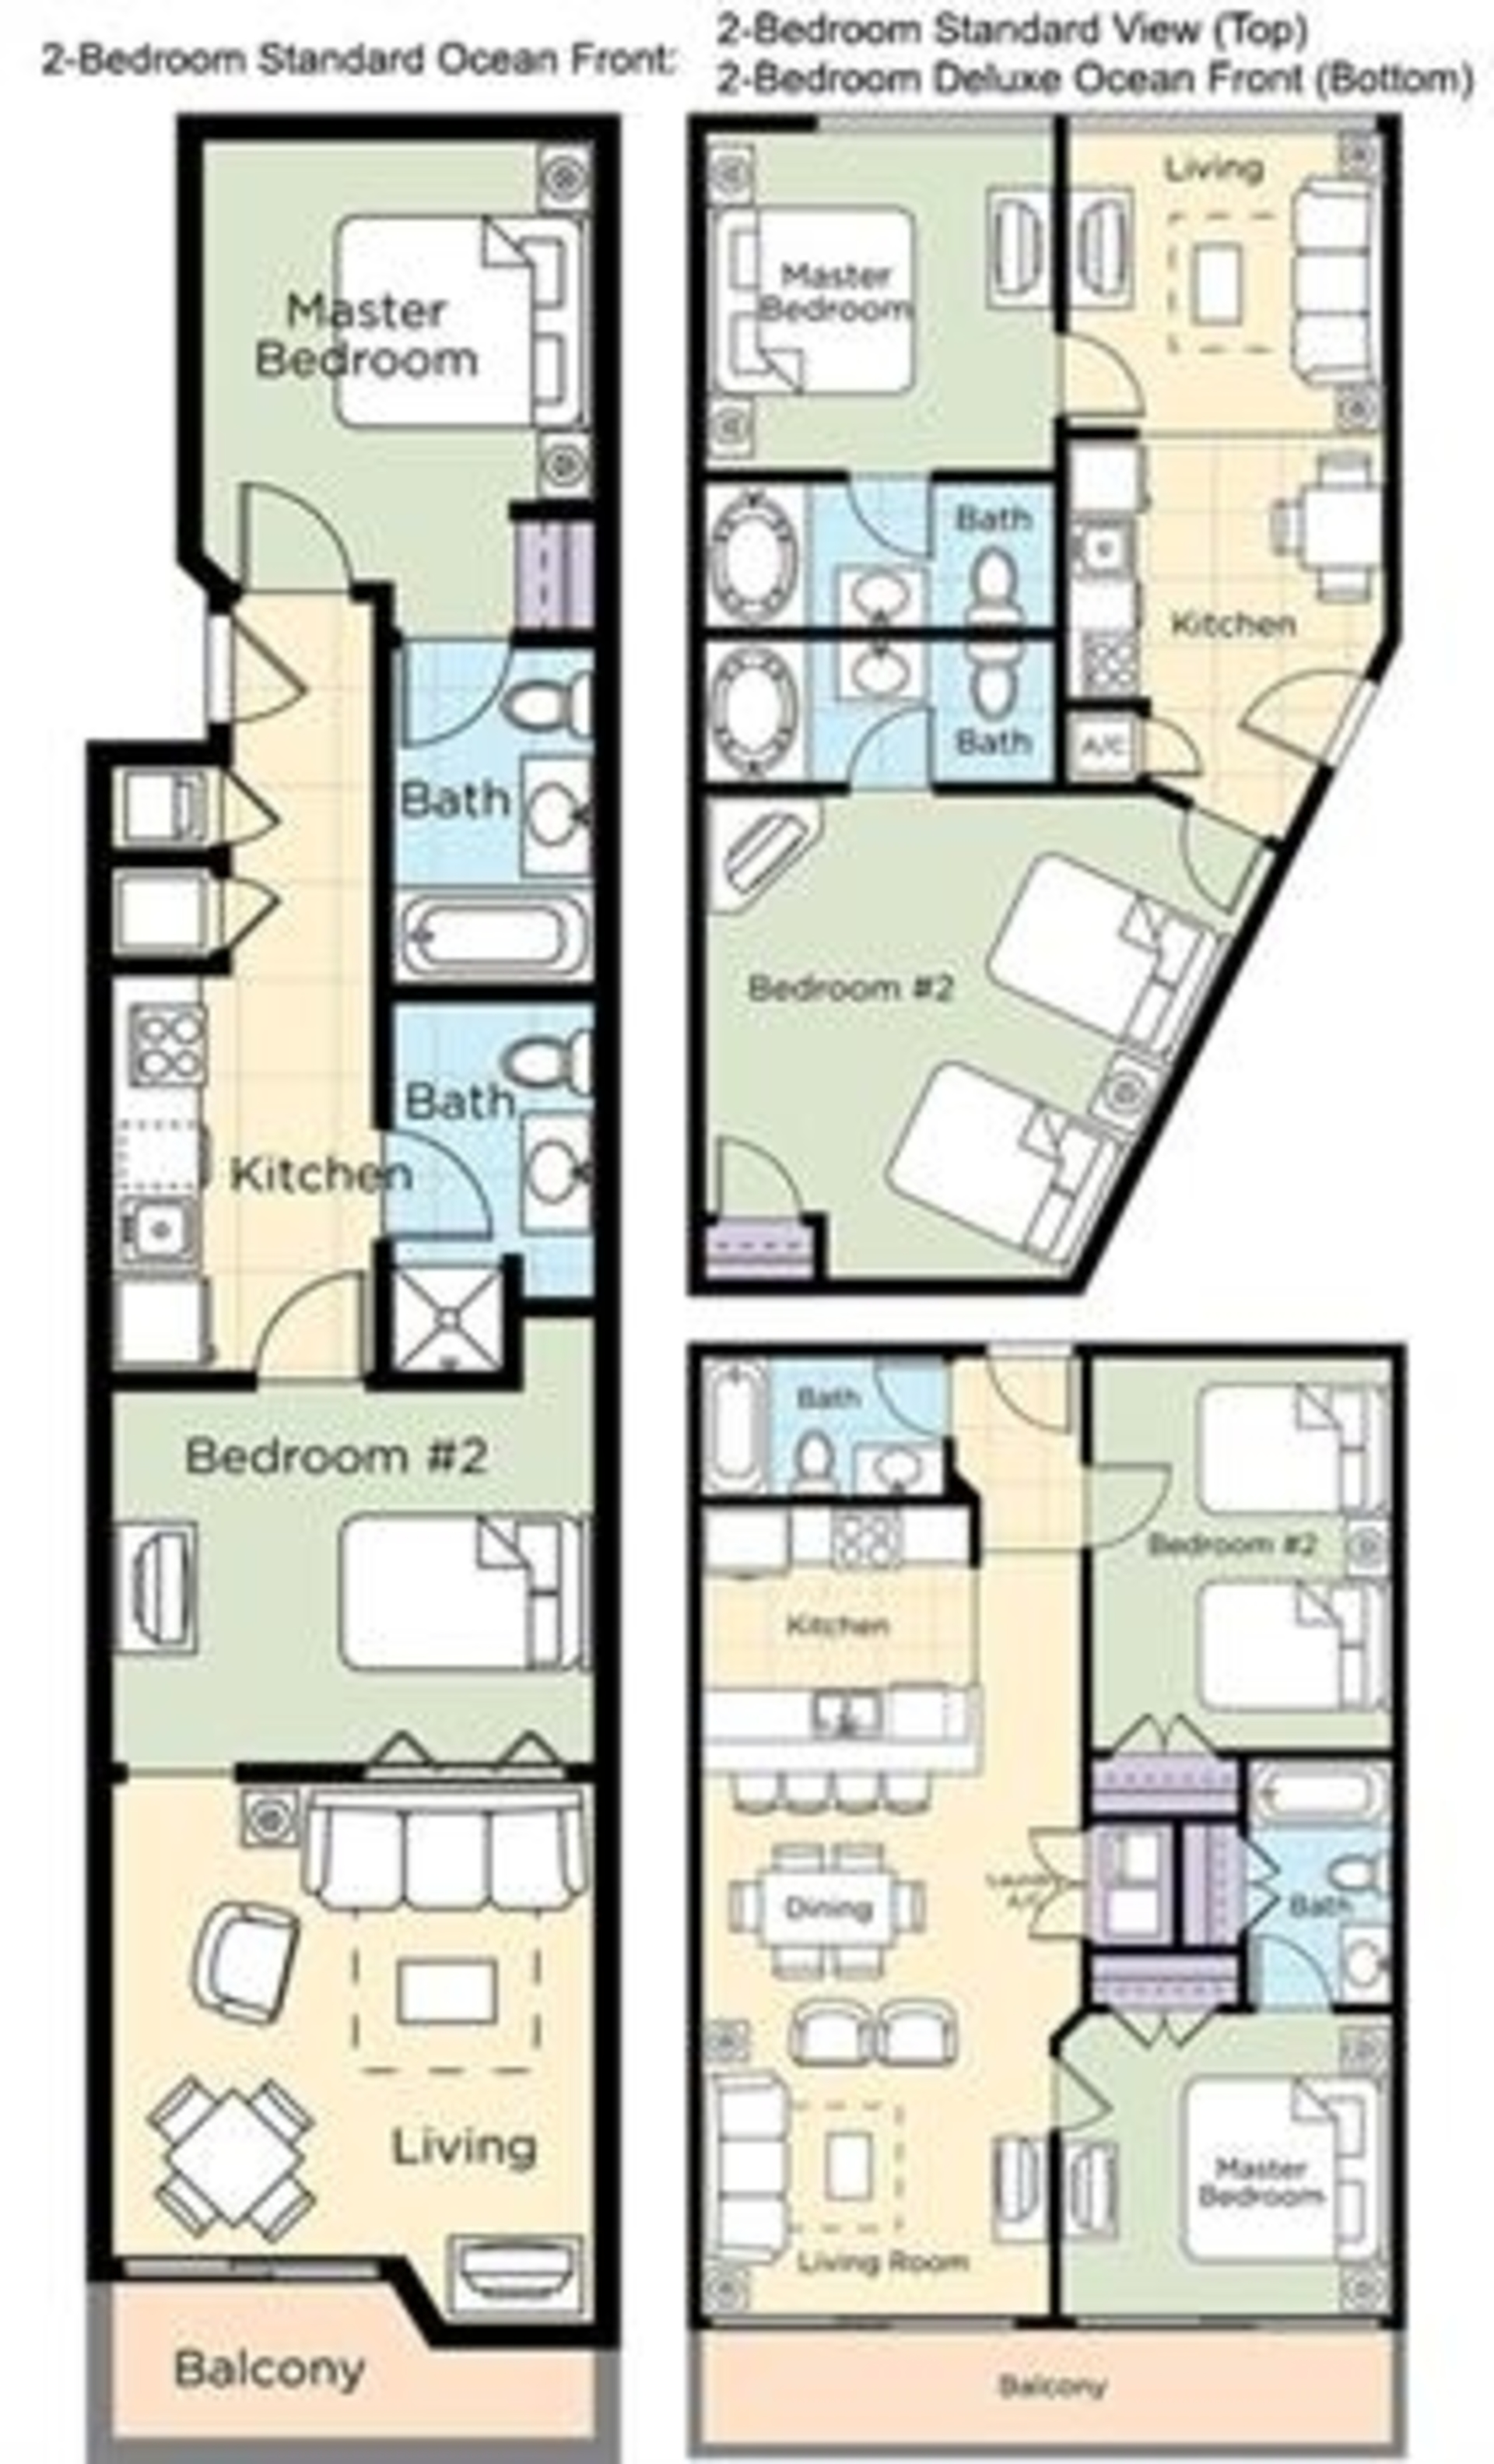 Myrtle Beach Towers On The Grove Wholesale Holiday Rentals